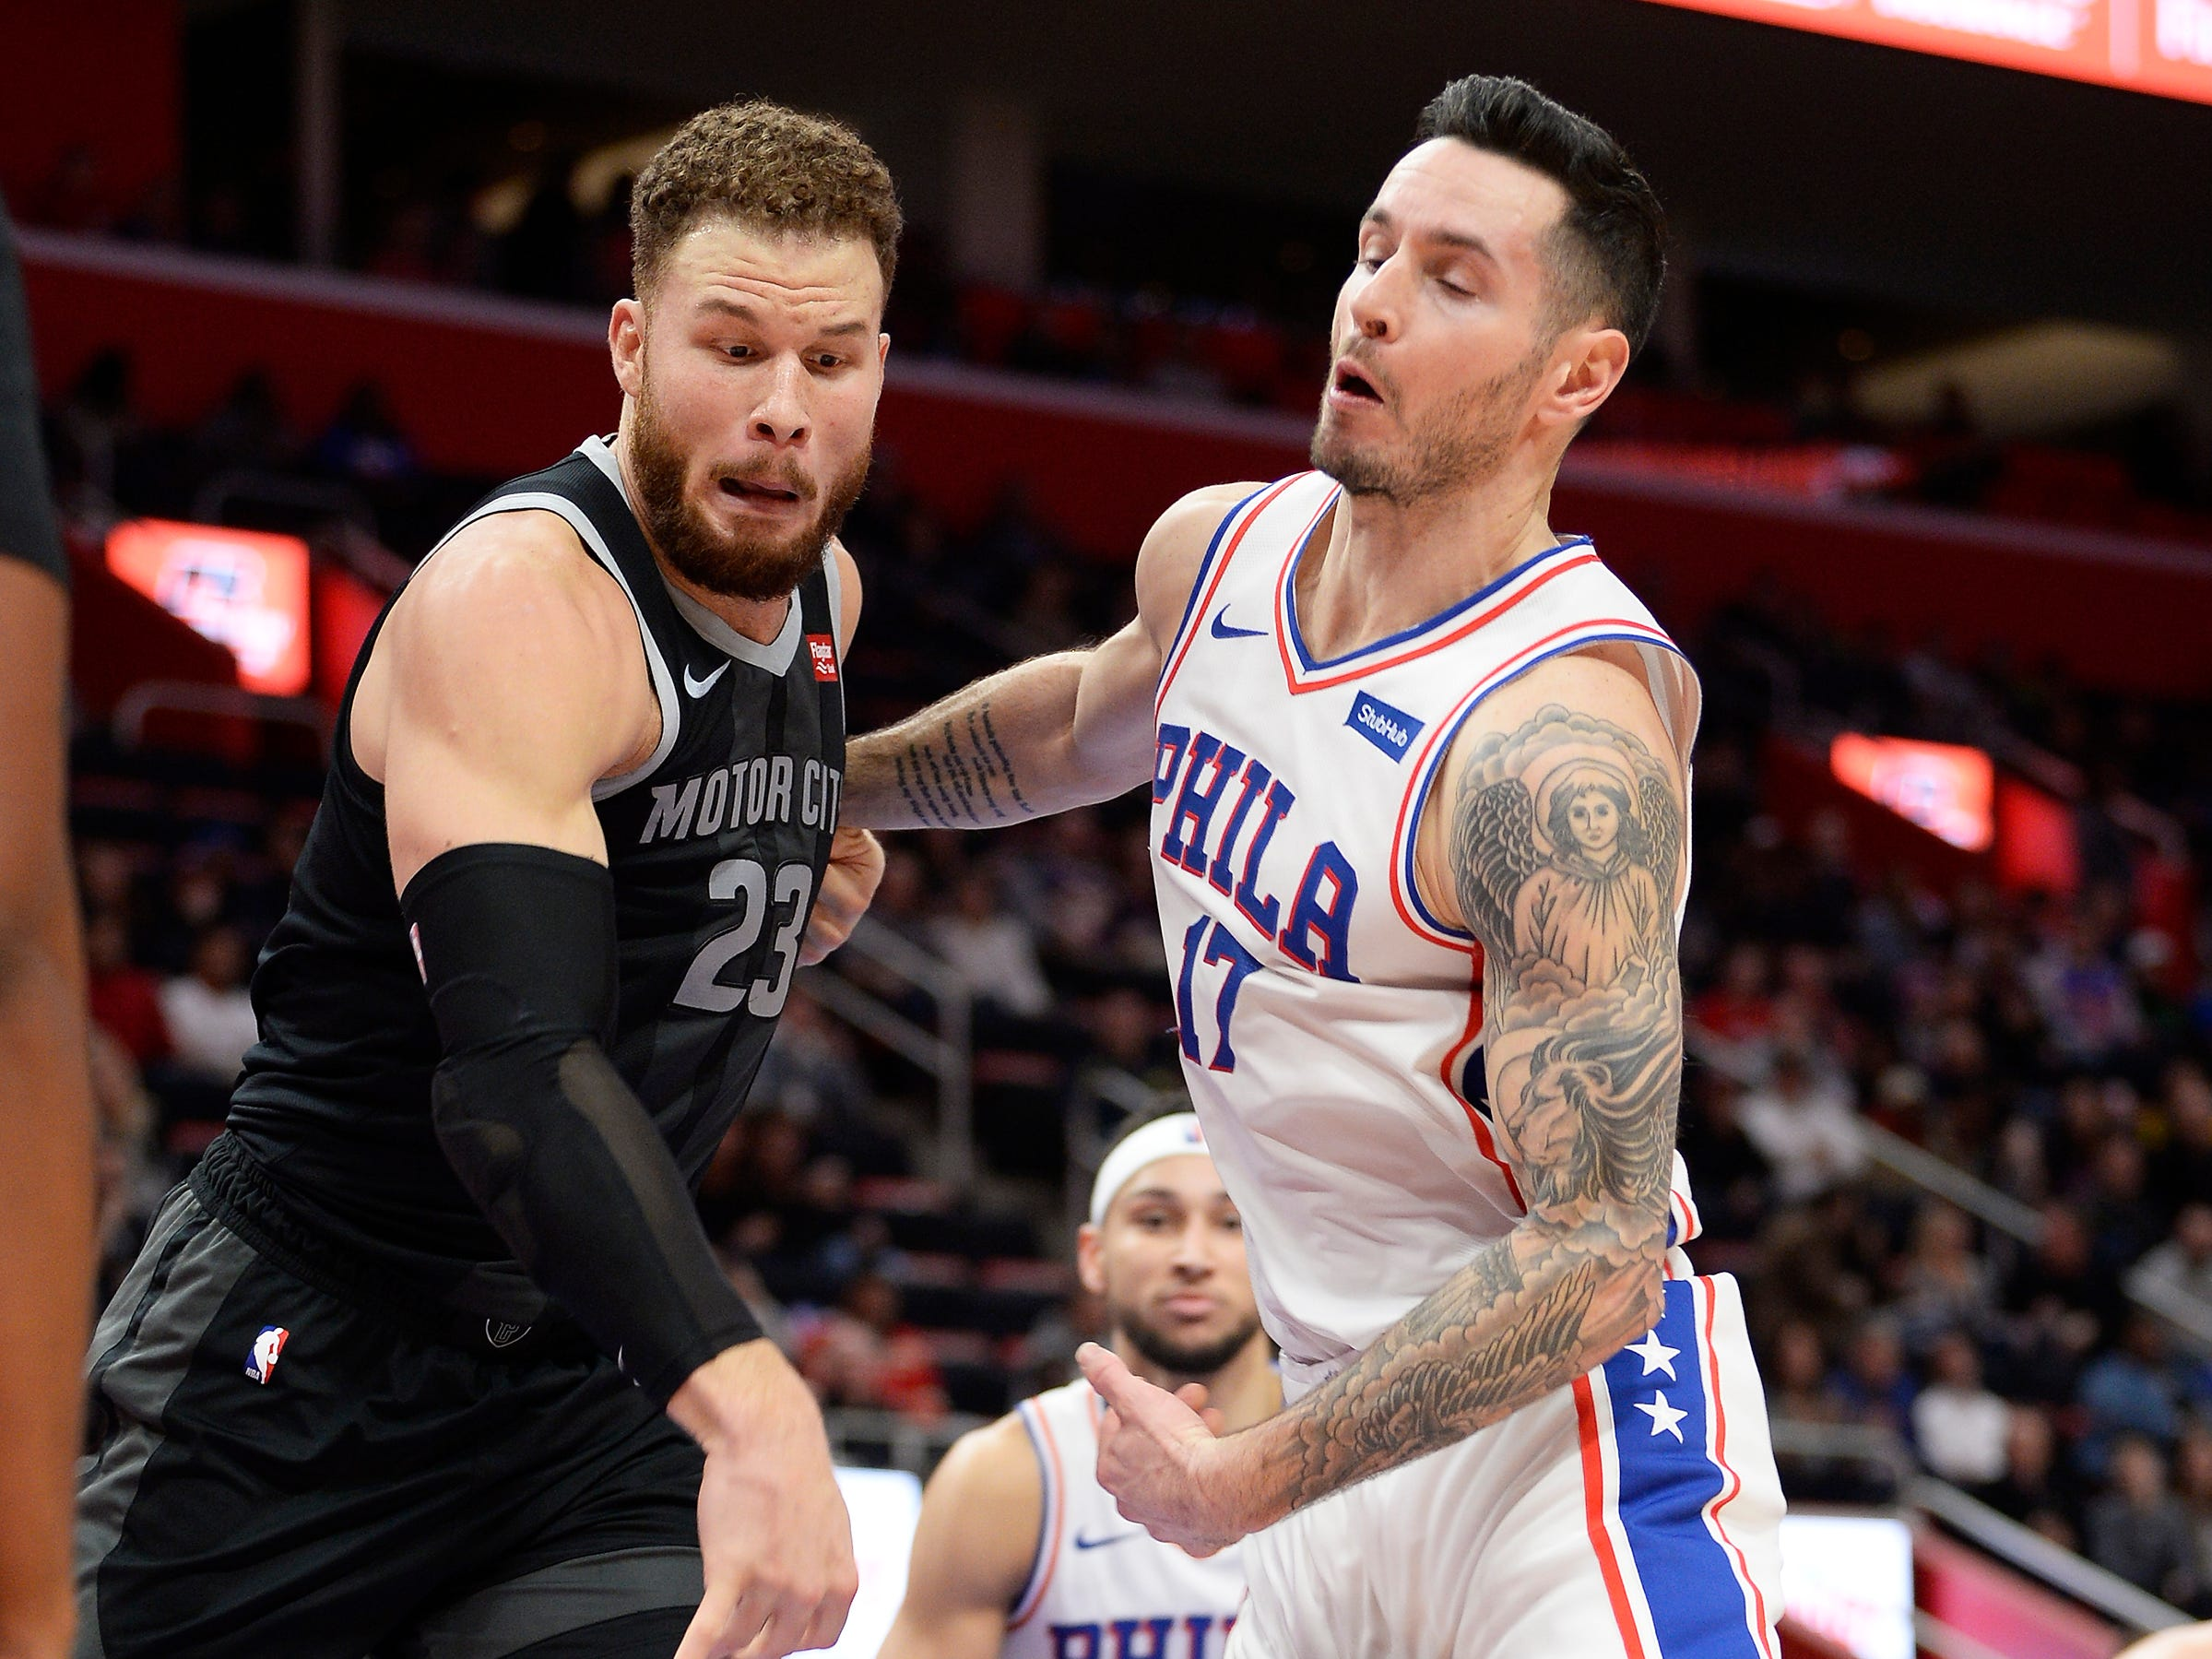 Pistons' Blake Griffin knocks the ball away from 76ers' JJ Redick in the second quarter.